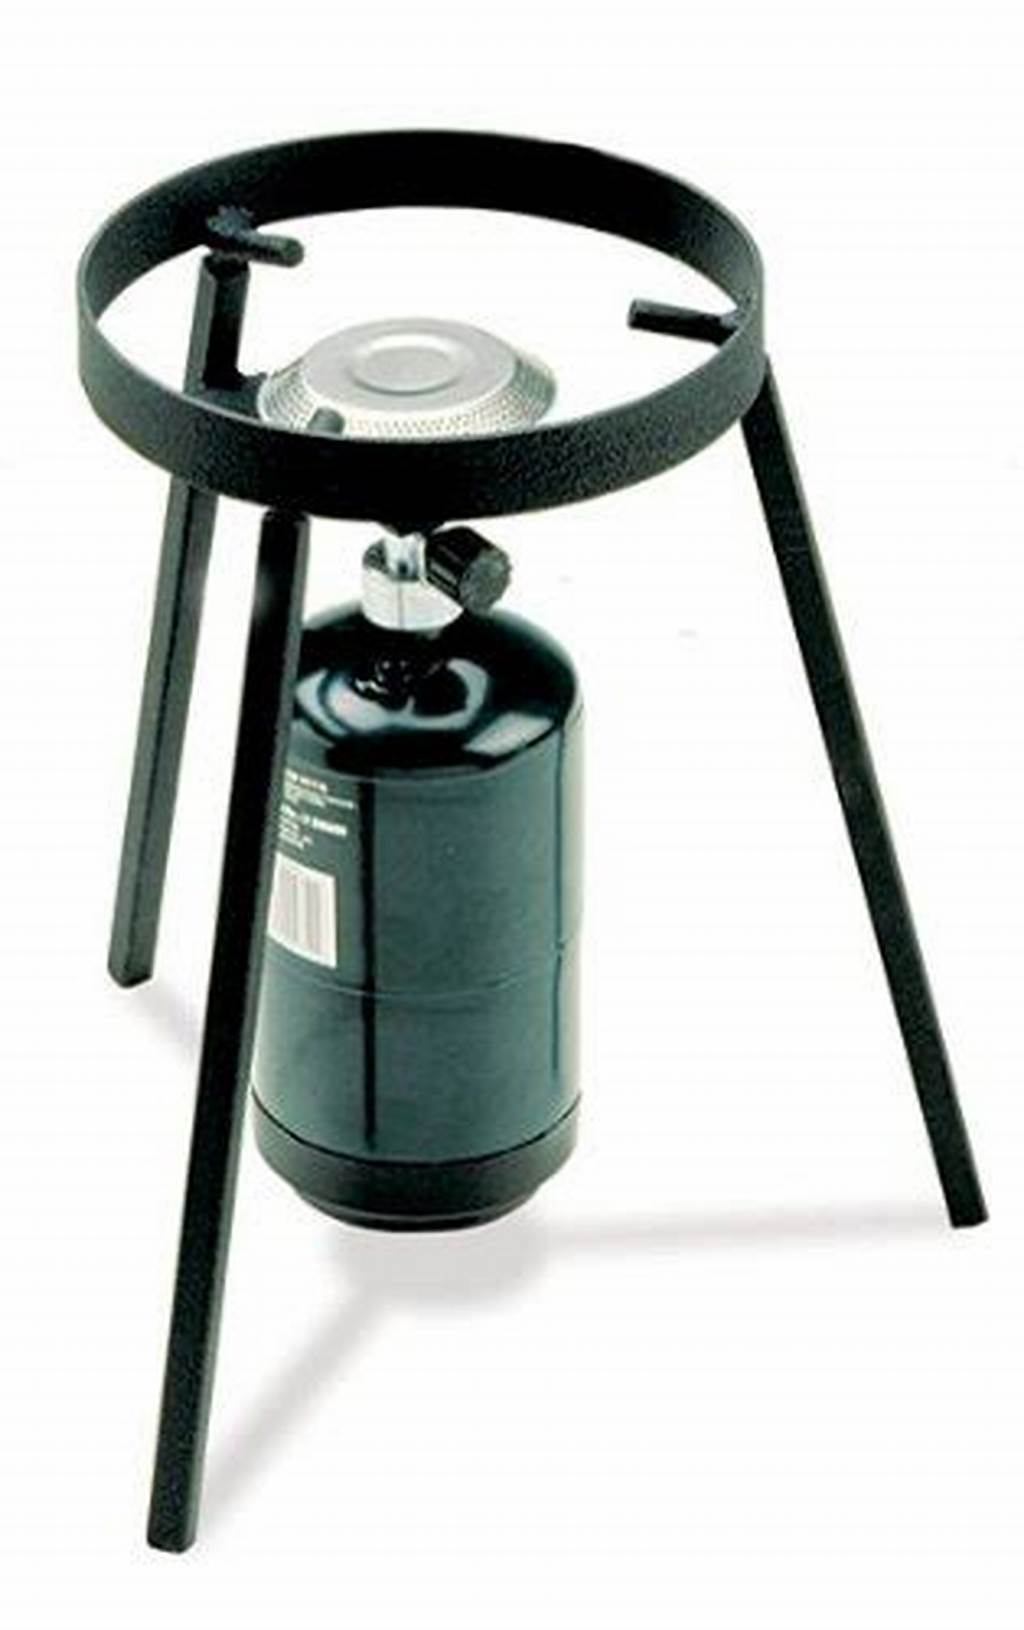 #Zodi #Outback #8170 #Extreme #Portable #Propane #Shower